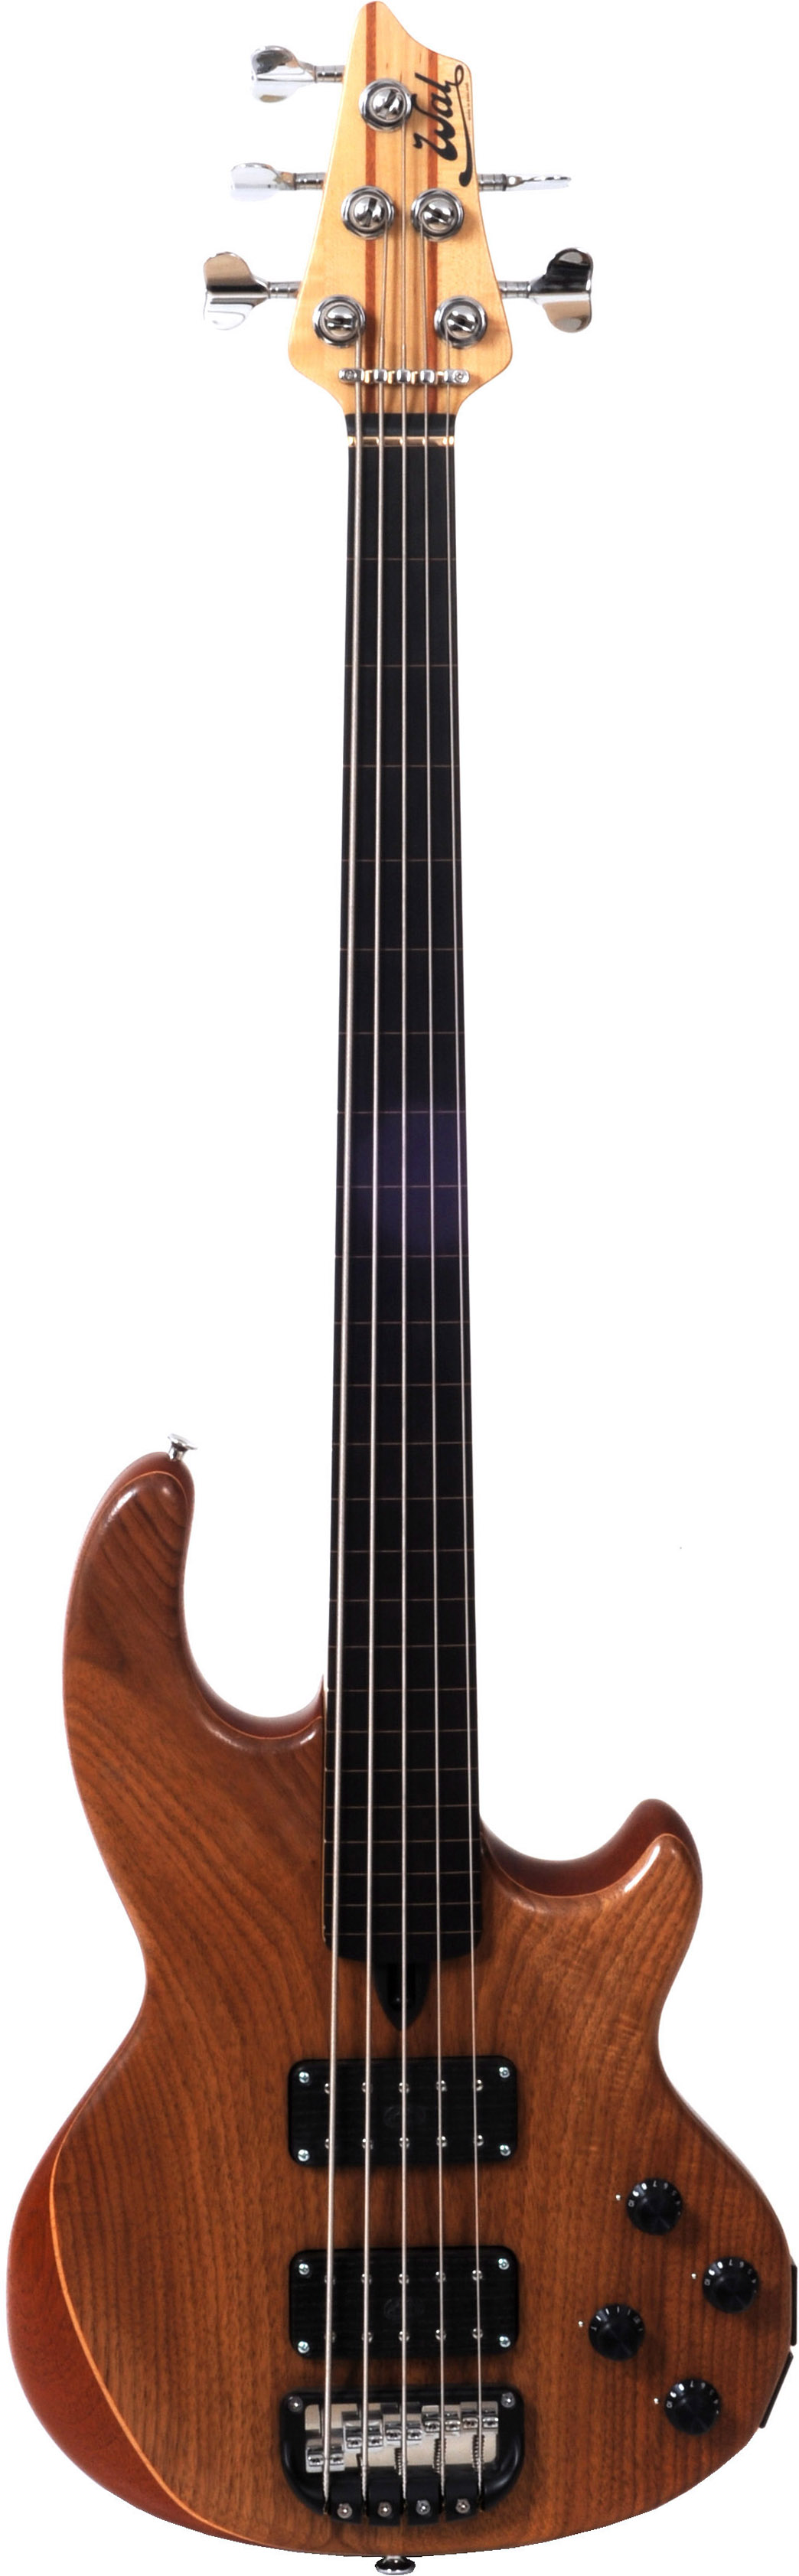 5-string Mk2 with American walnut facings and a lined fretless ebony fingerboard.